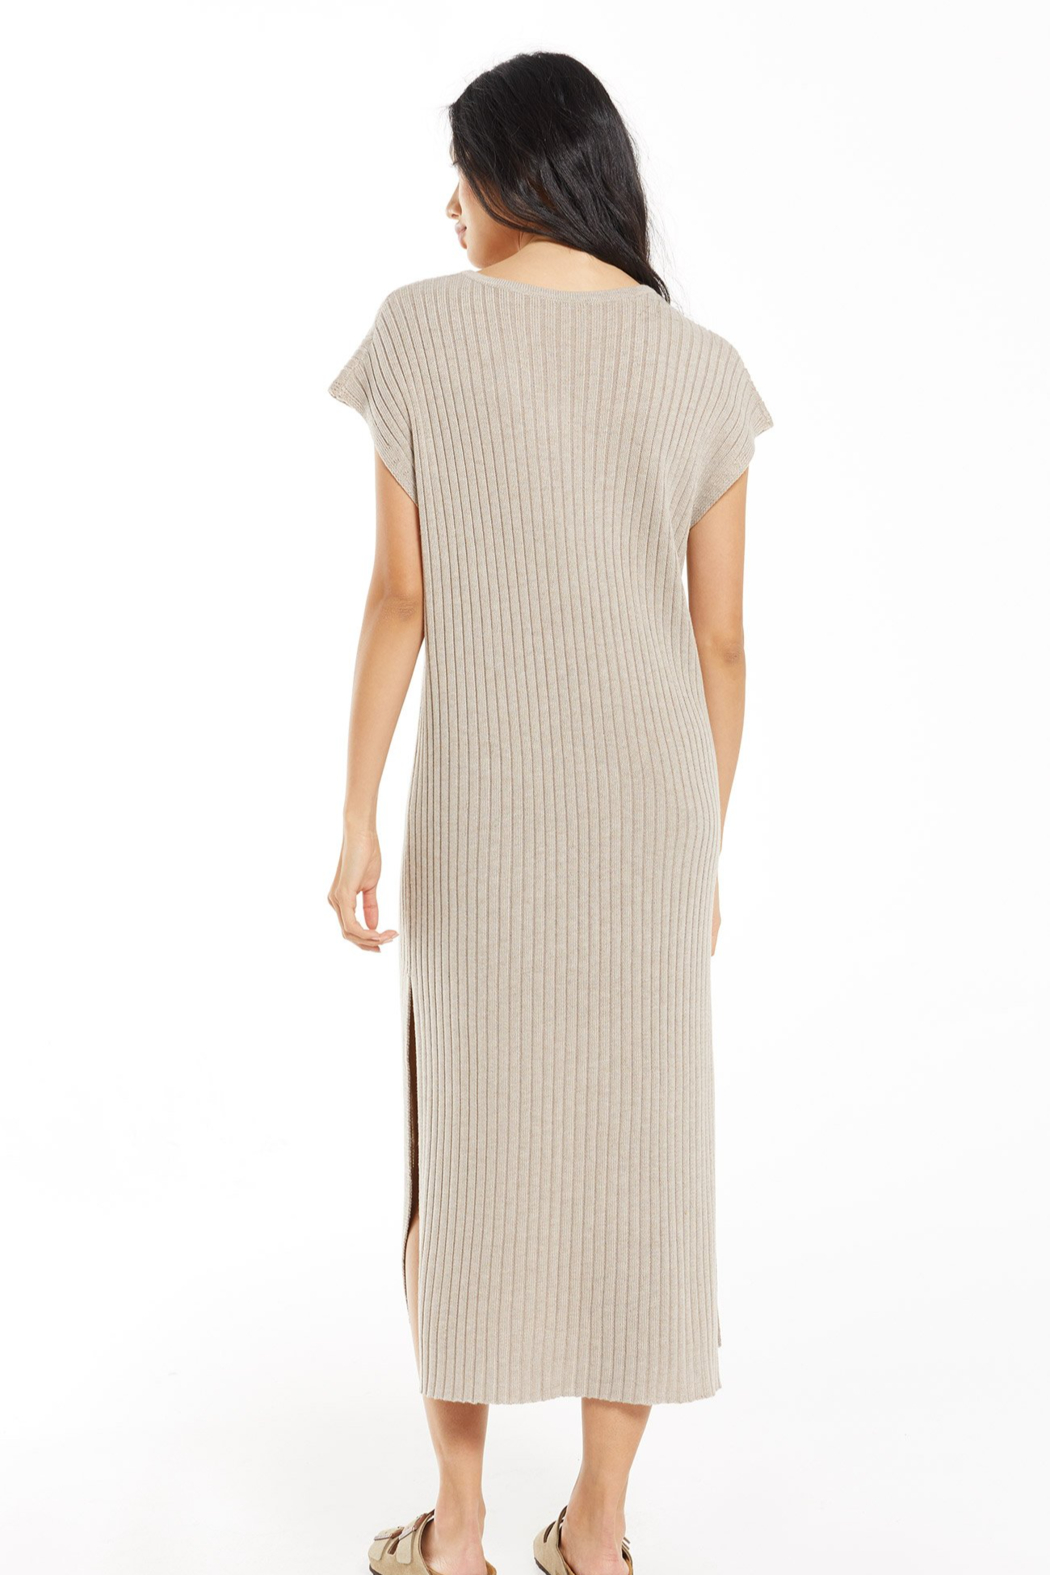 z supply Sweater Dress - Side Cropped Image